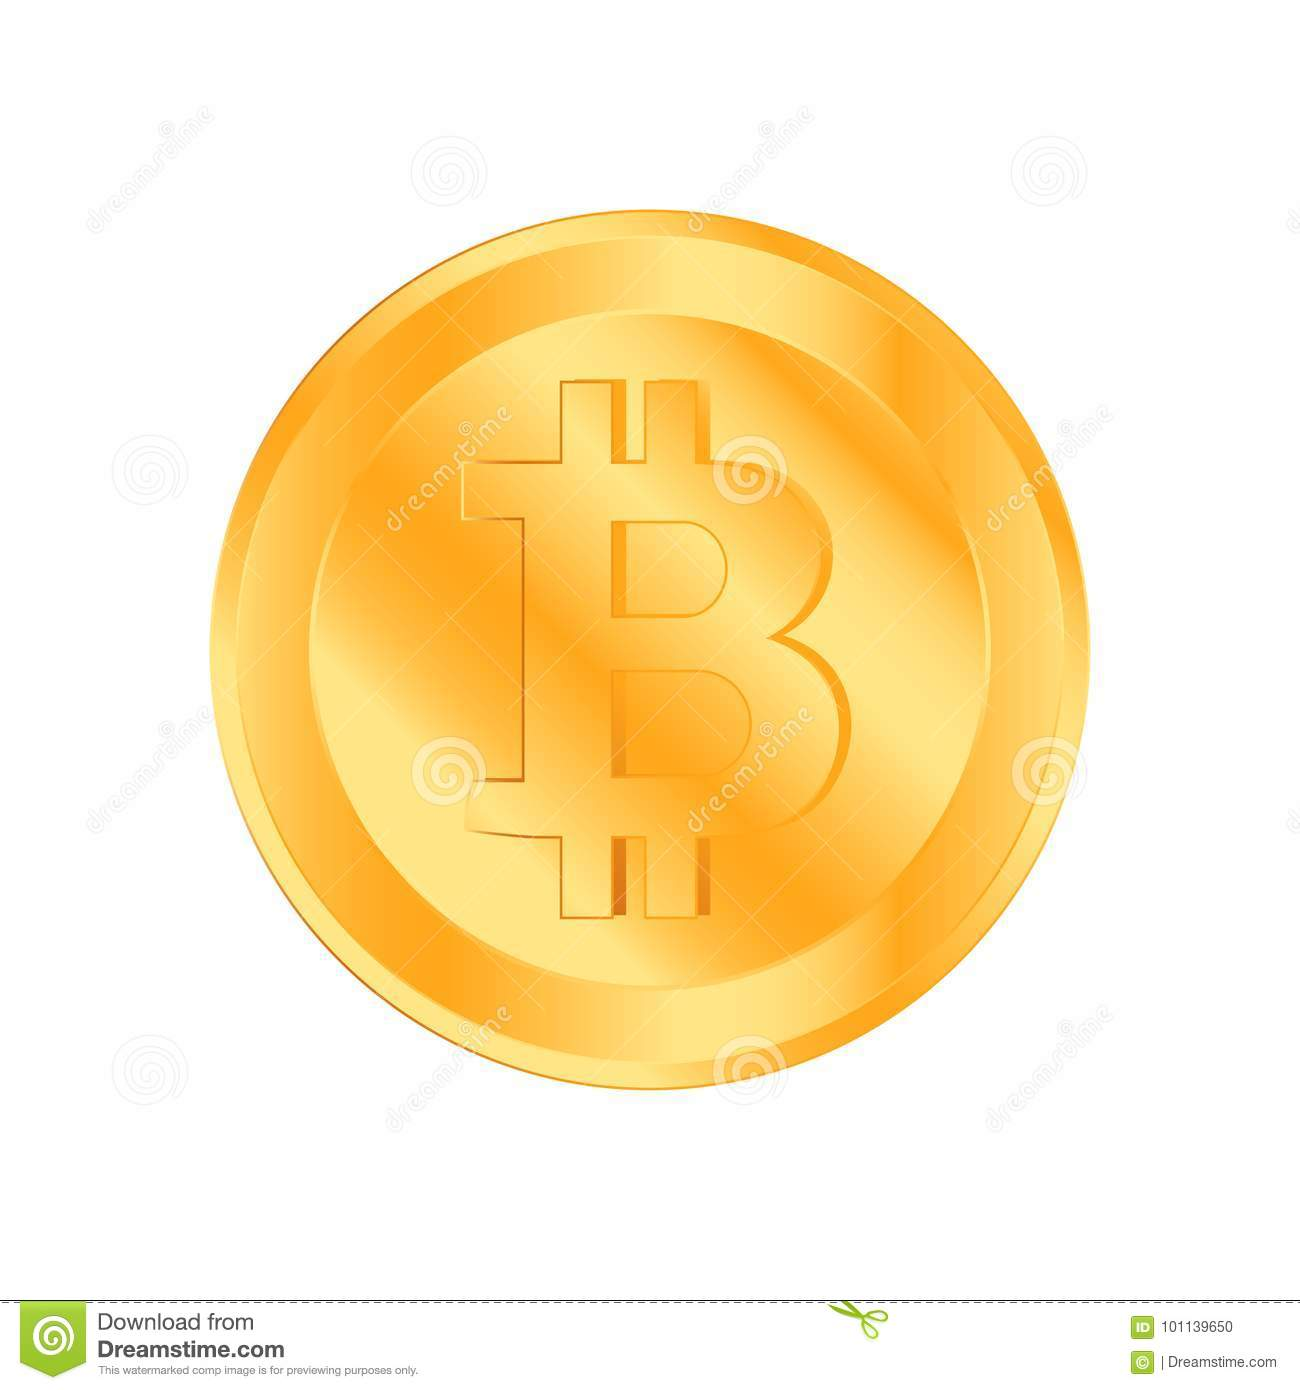 Crypto Currency Golden Coin On White Background. Bitcoin Symbol Of  Electronic Money. Flat Illustration EPS 10 Stock Illustration -  Illustration of cryptocurrency, cash: 101139650